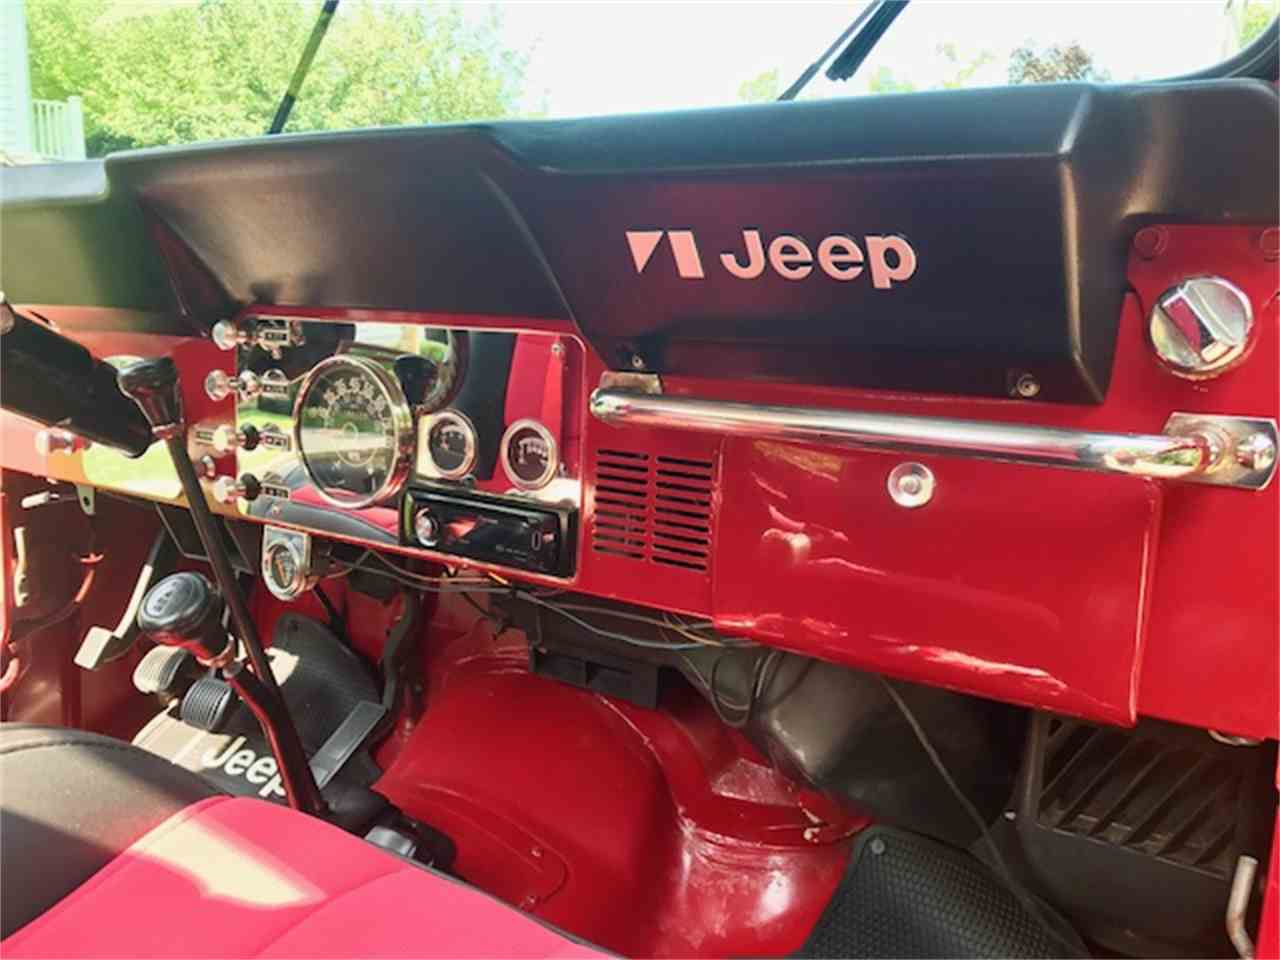 Large Picture of 1980 Jeep Wrangler located in New York Offered by a Private Seller - LUVJ